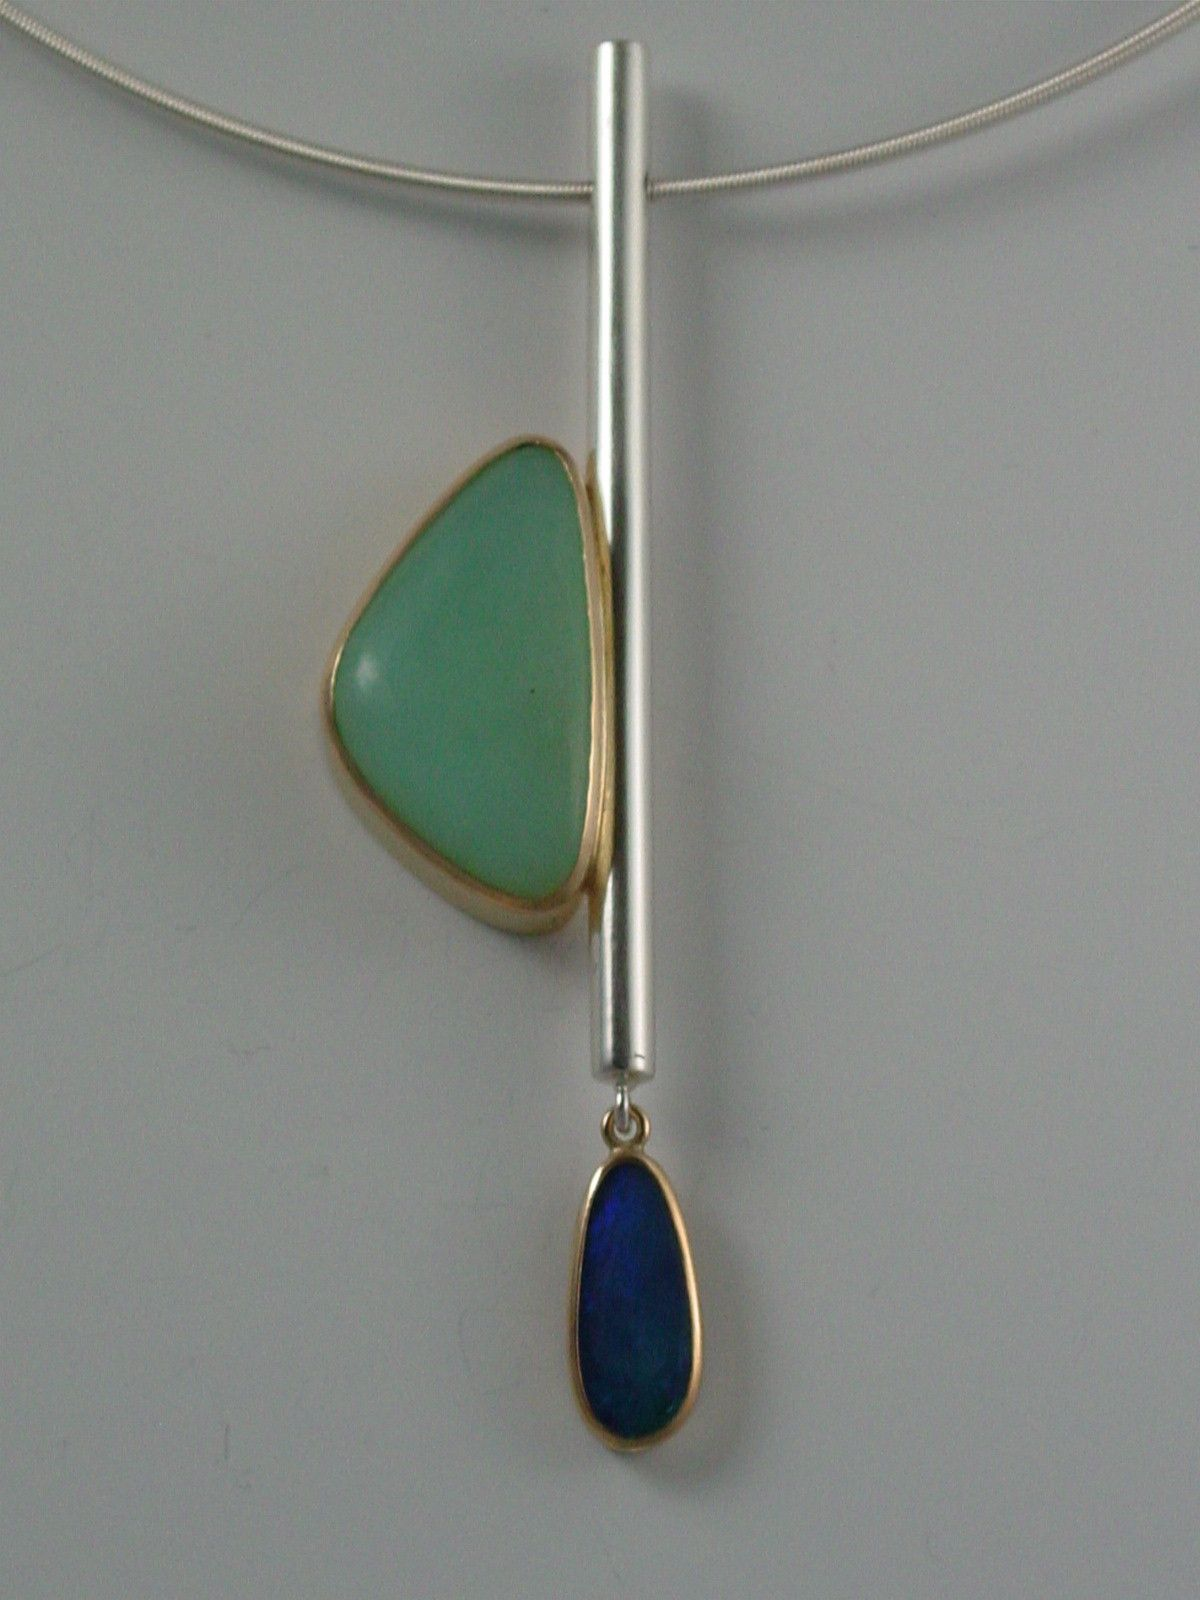 NECKLACE - STERLING SILVER, 18KT, PERUVIAN OPAL